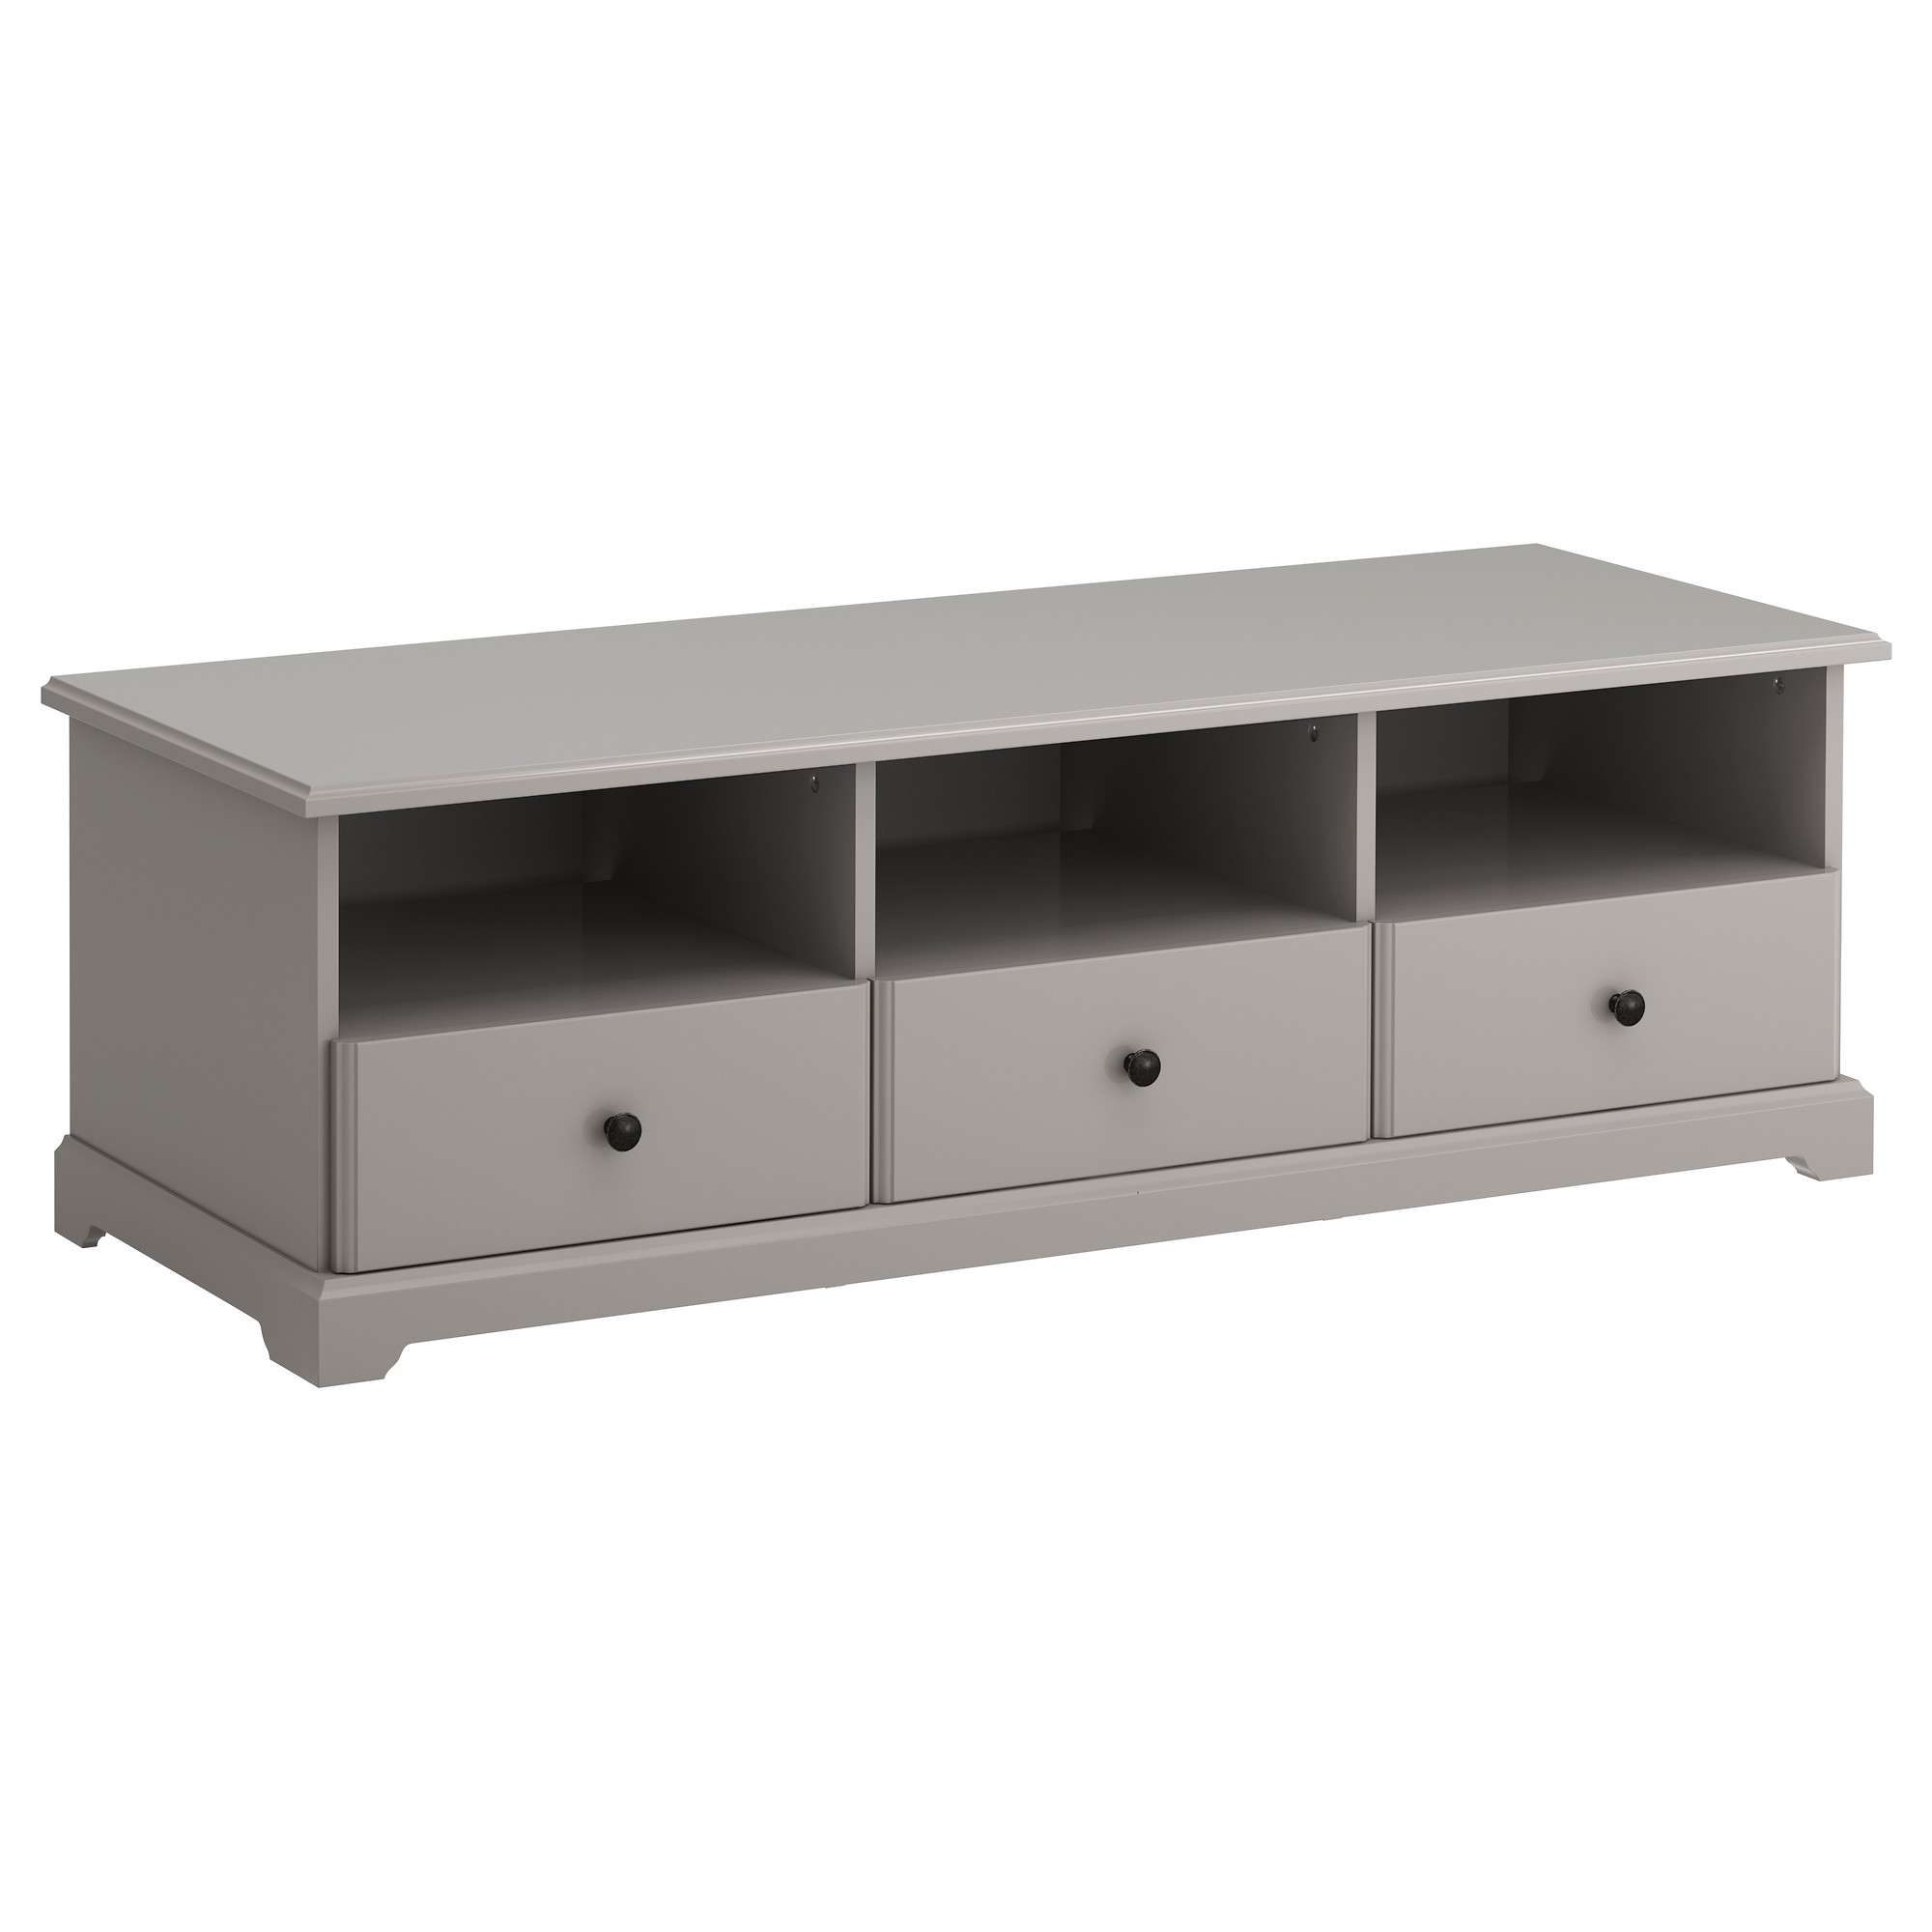 Tv Stands & Entertainment Centers – Ikea Intended For Yellow Tv Stands Ikea (View 17 of 20)